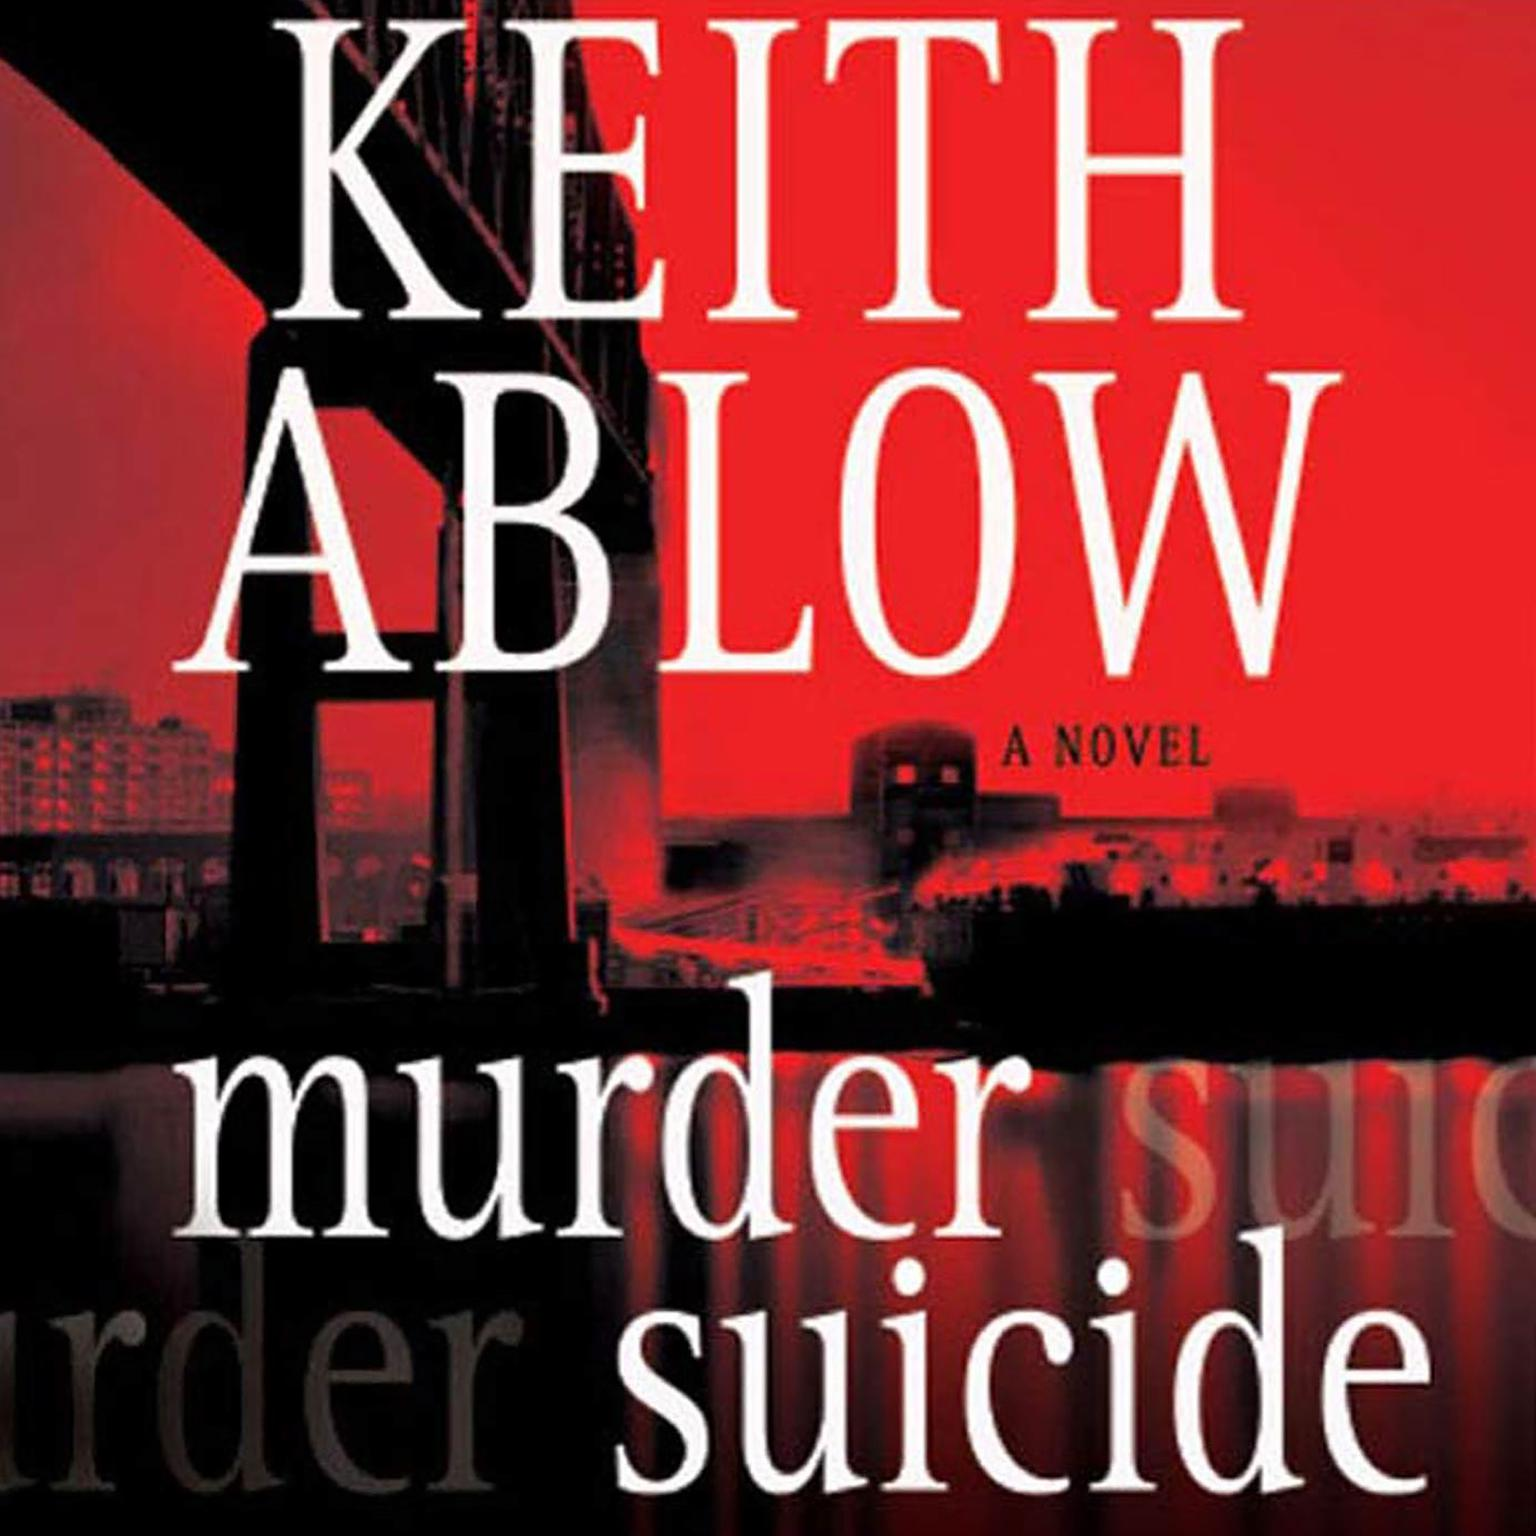 Printable Murder Suicide: A Novel Audiobook Cover Art